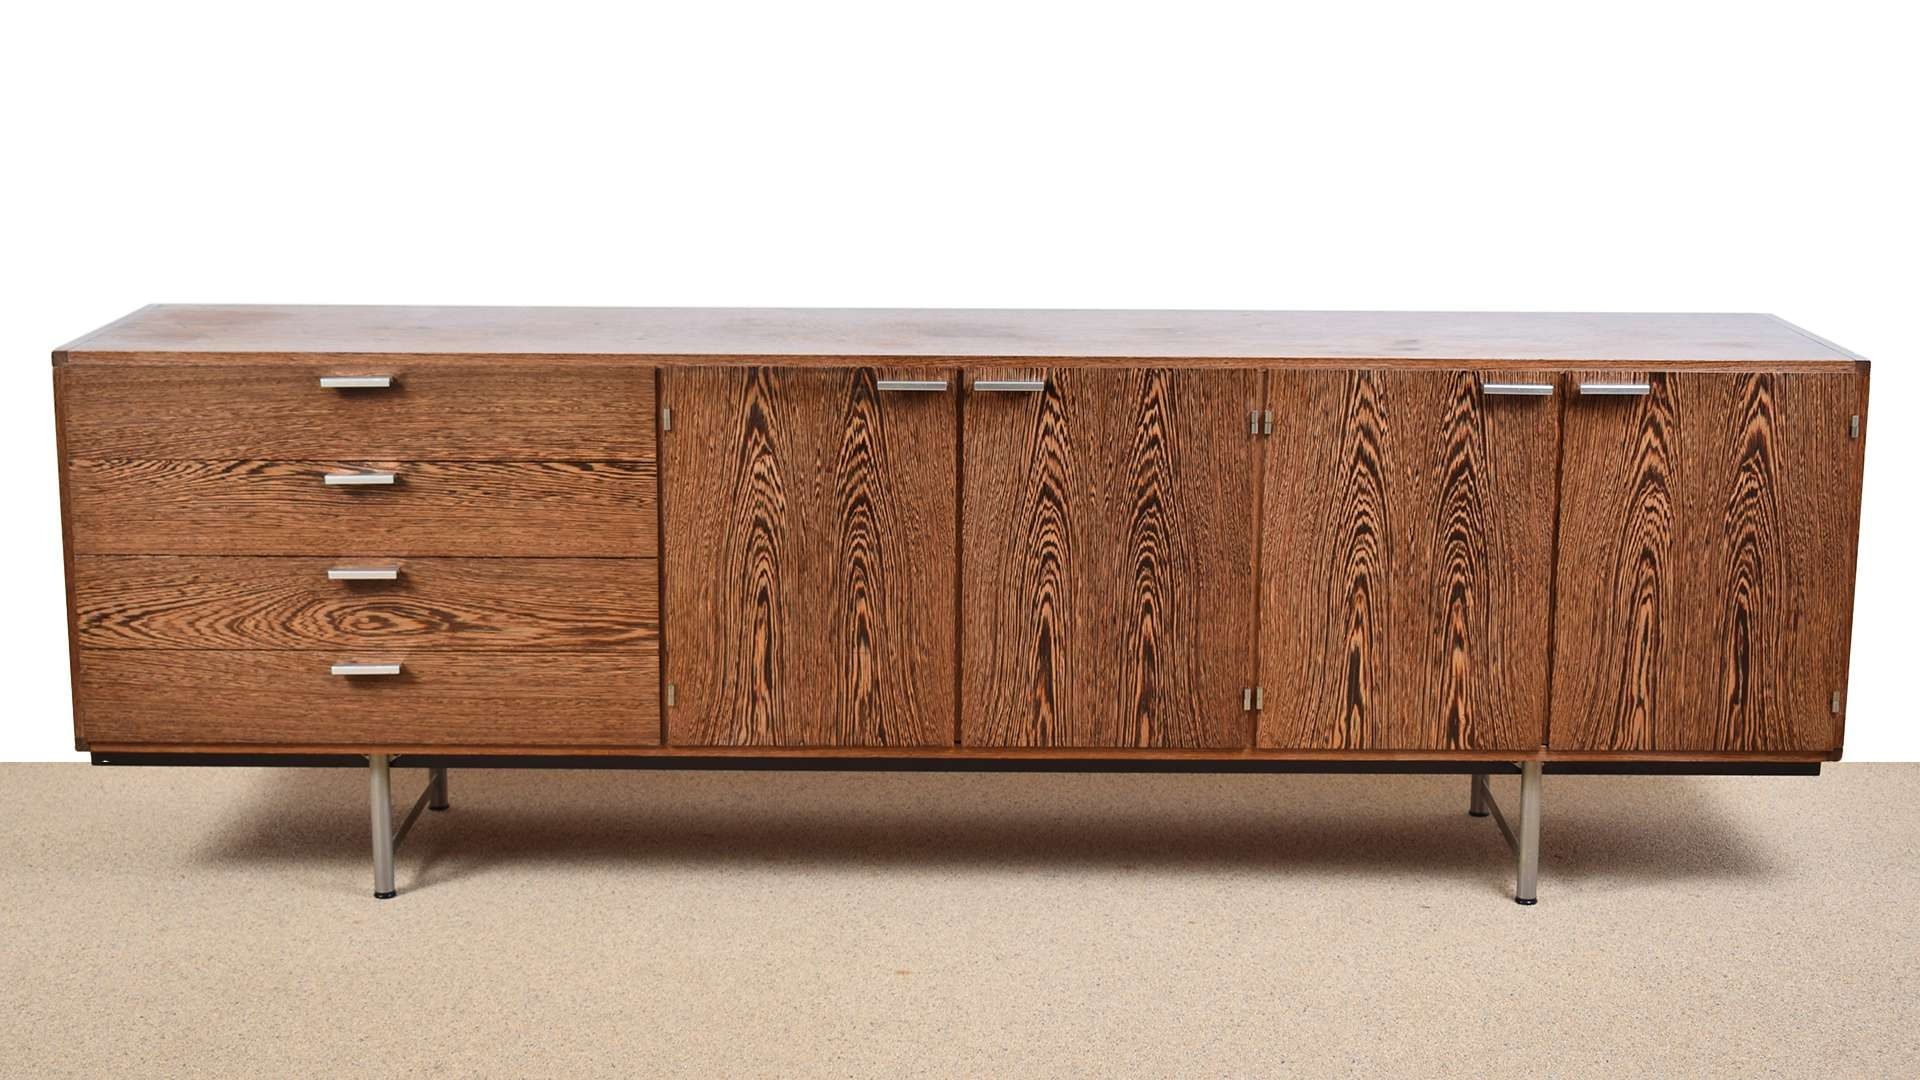 Wengé Sideboardcees Braakman For Pastoe, 1960s For Sale At Pamono Throughout Wenge Sideboards (View 3 of 20)